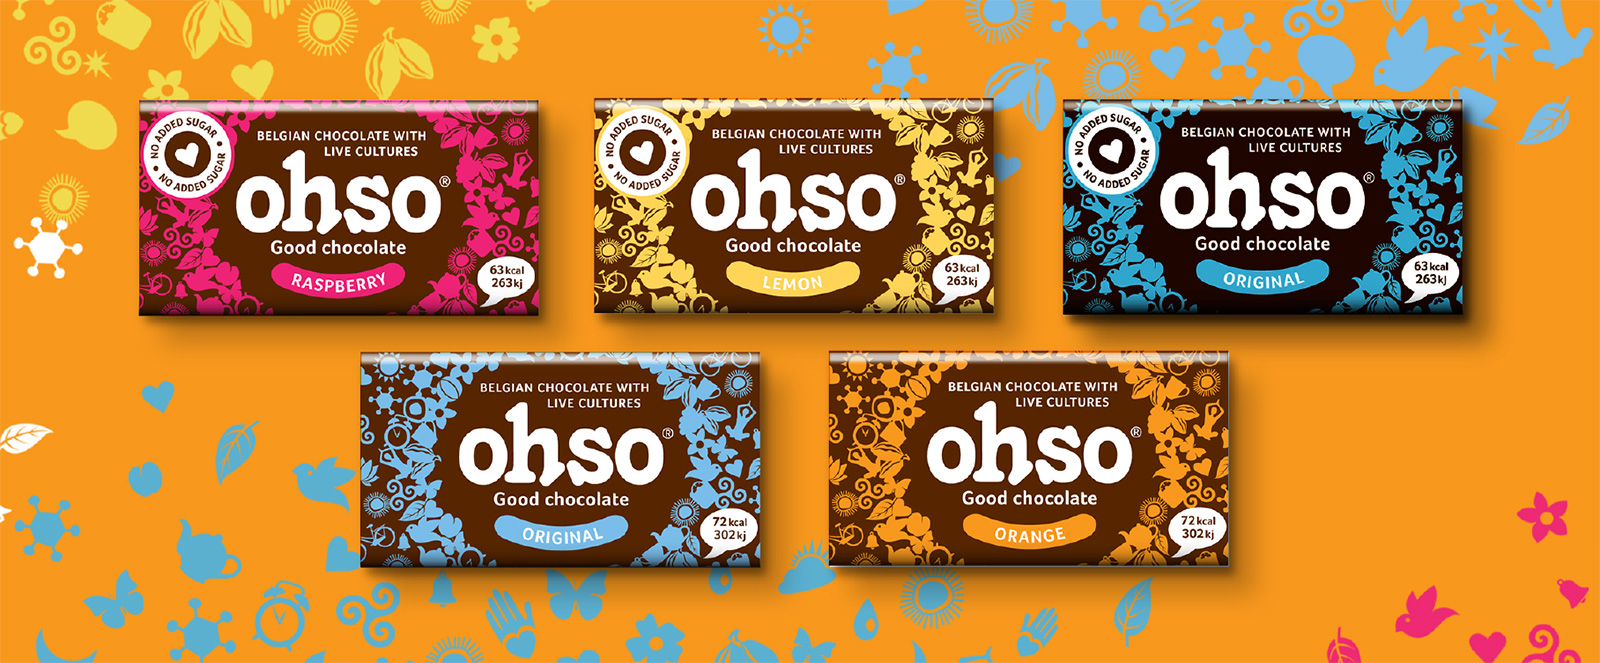 Ohso Original Bars and no added sugar, good chocolate. probiotic Belgian Chocolate